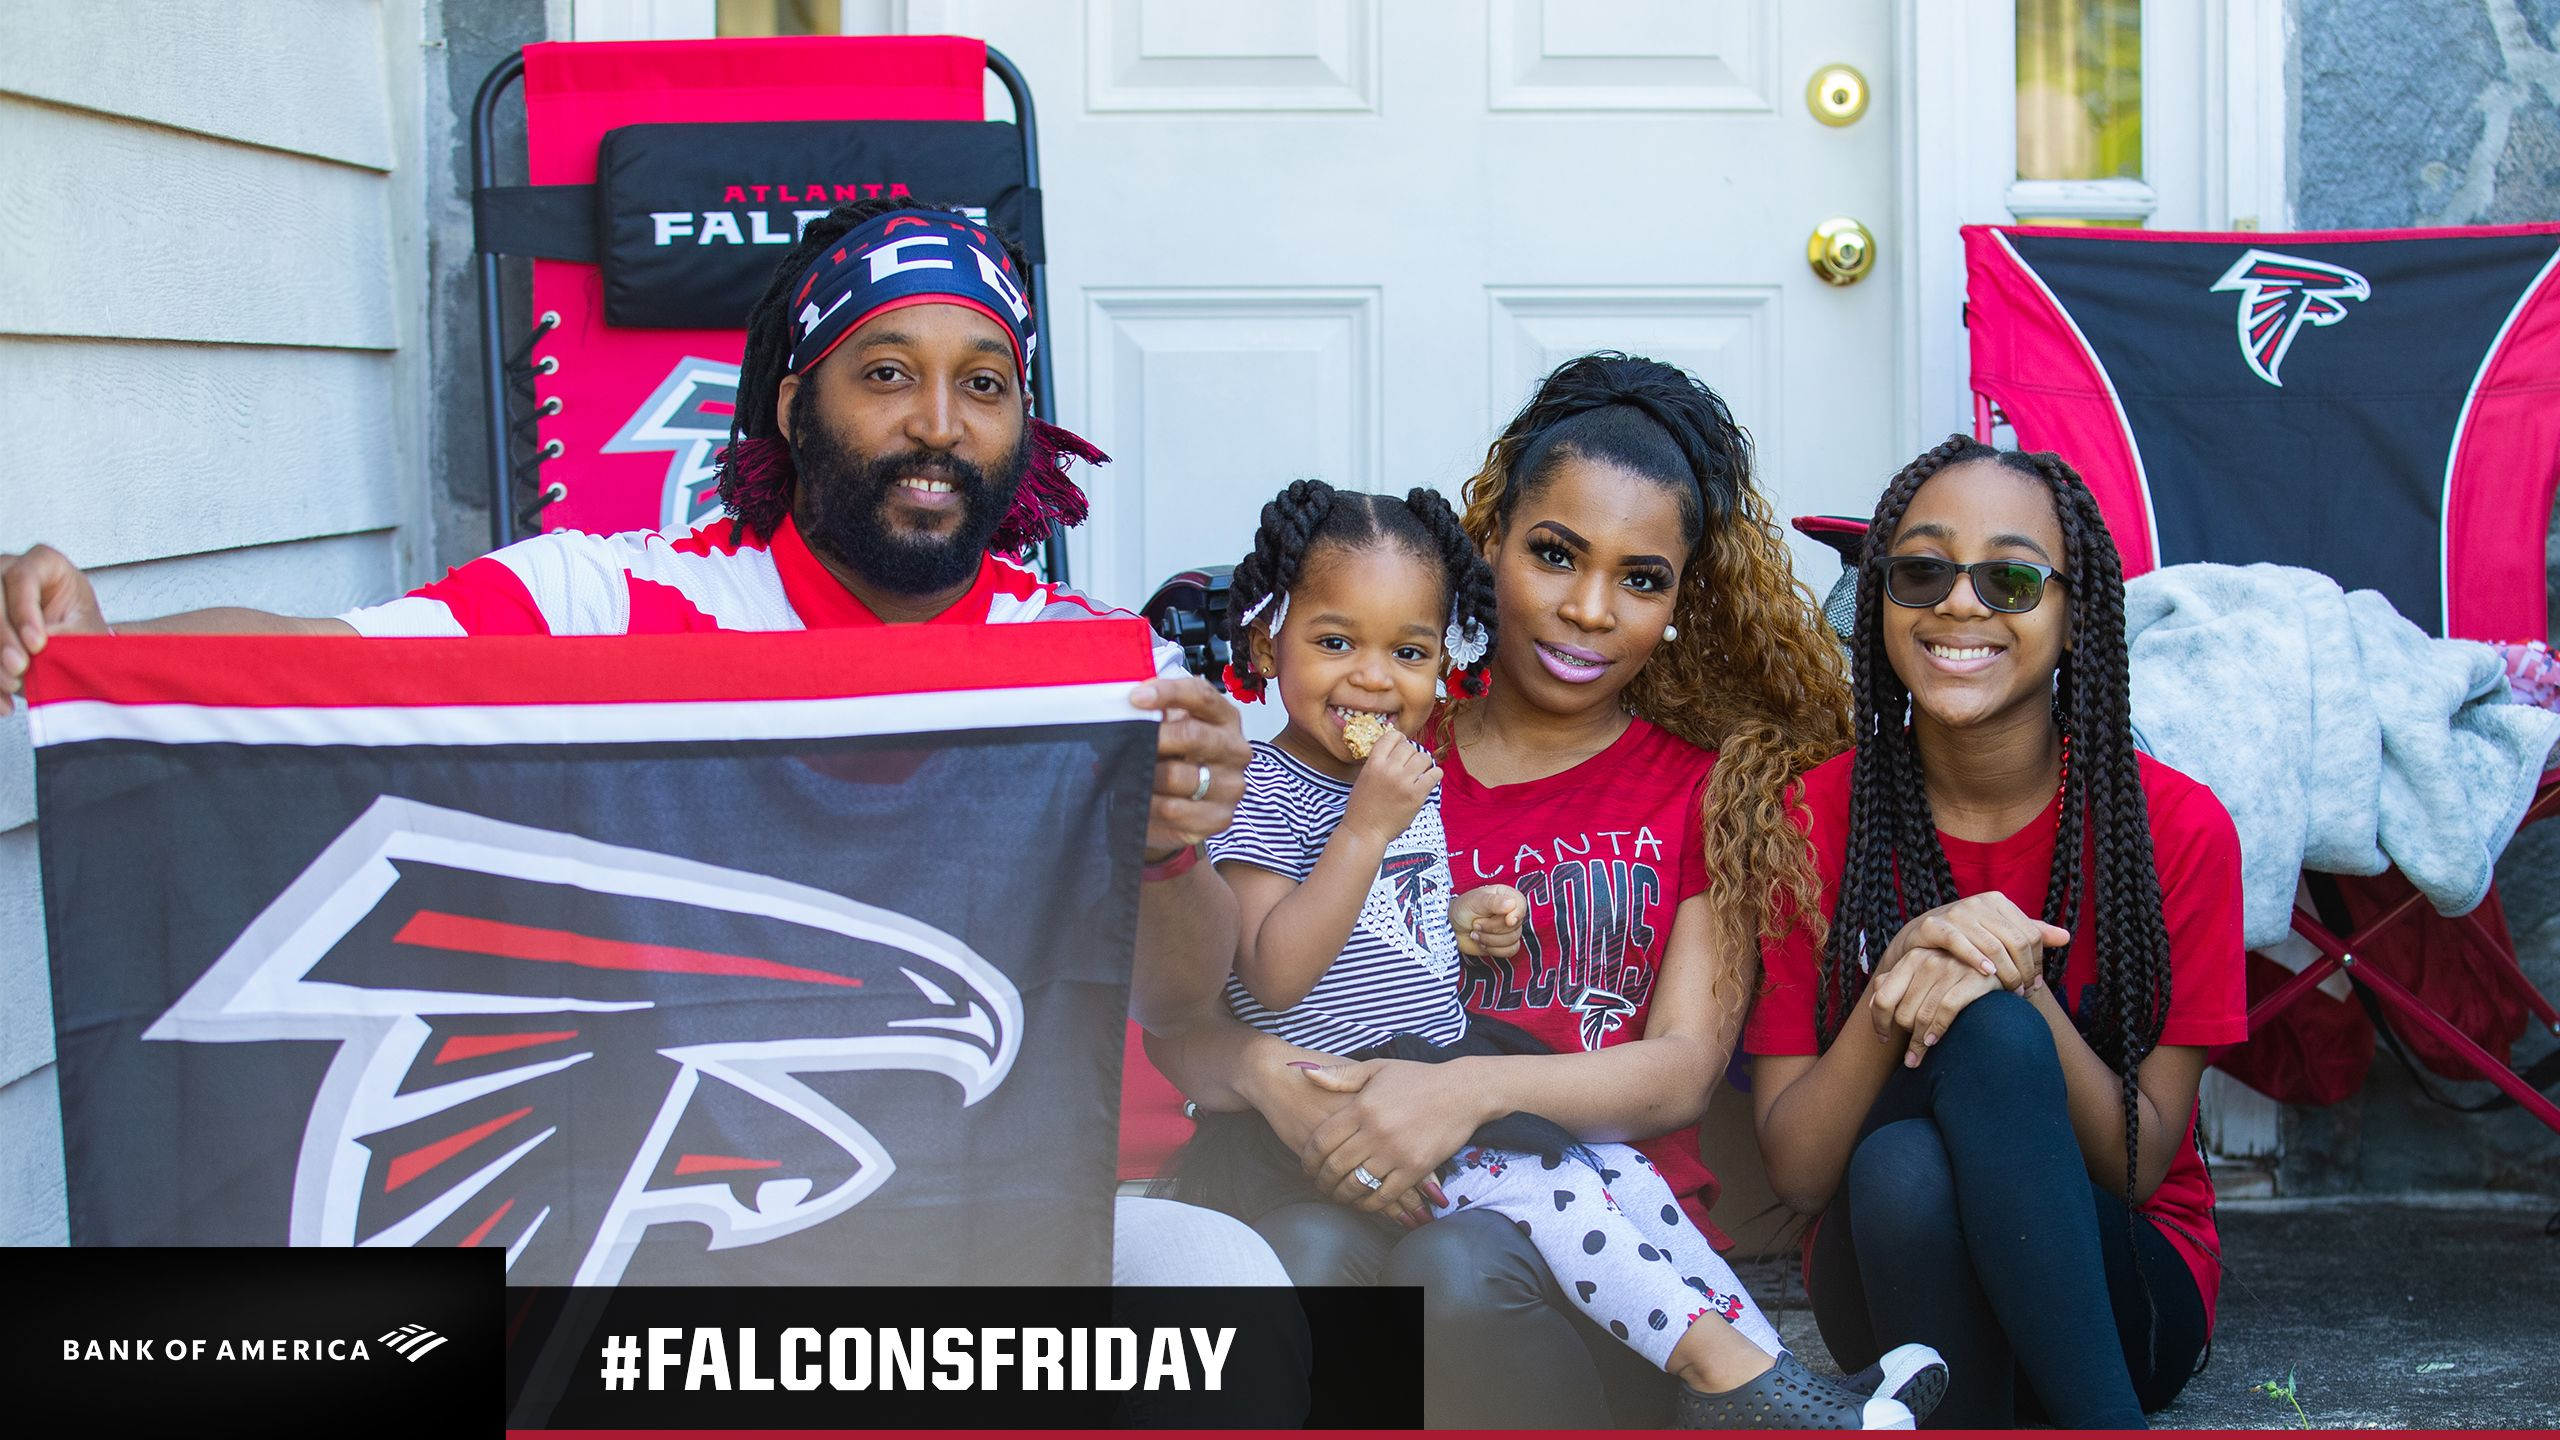 _falcons-friday_16x9